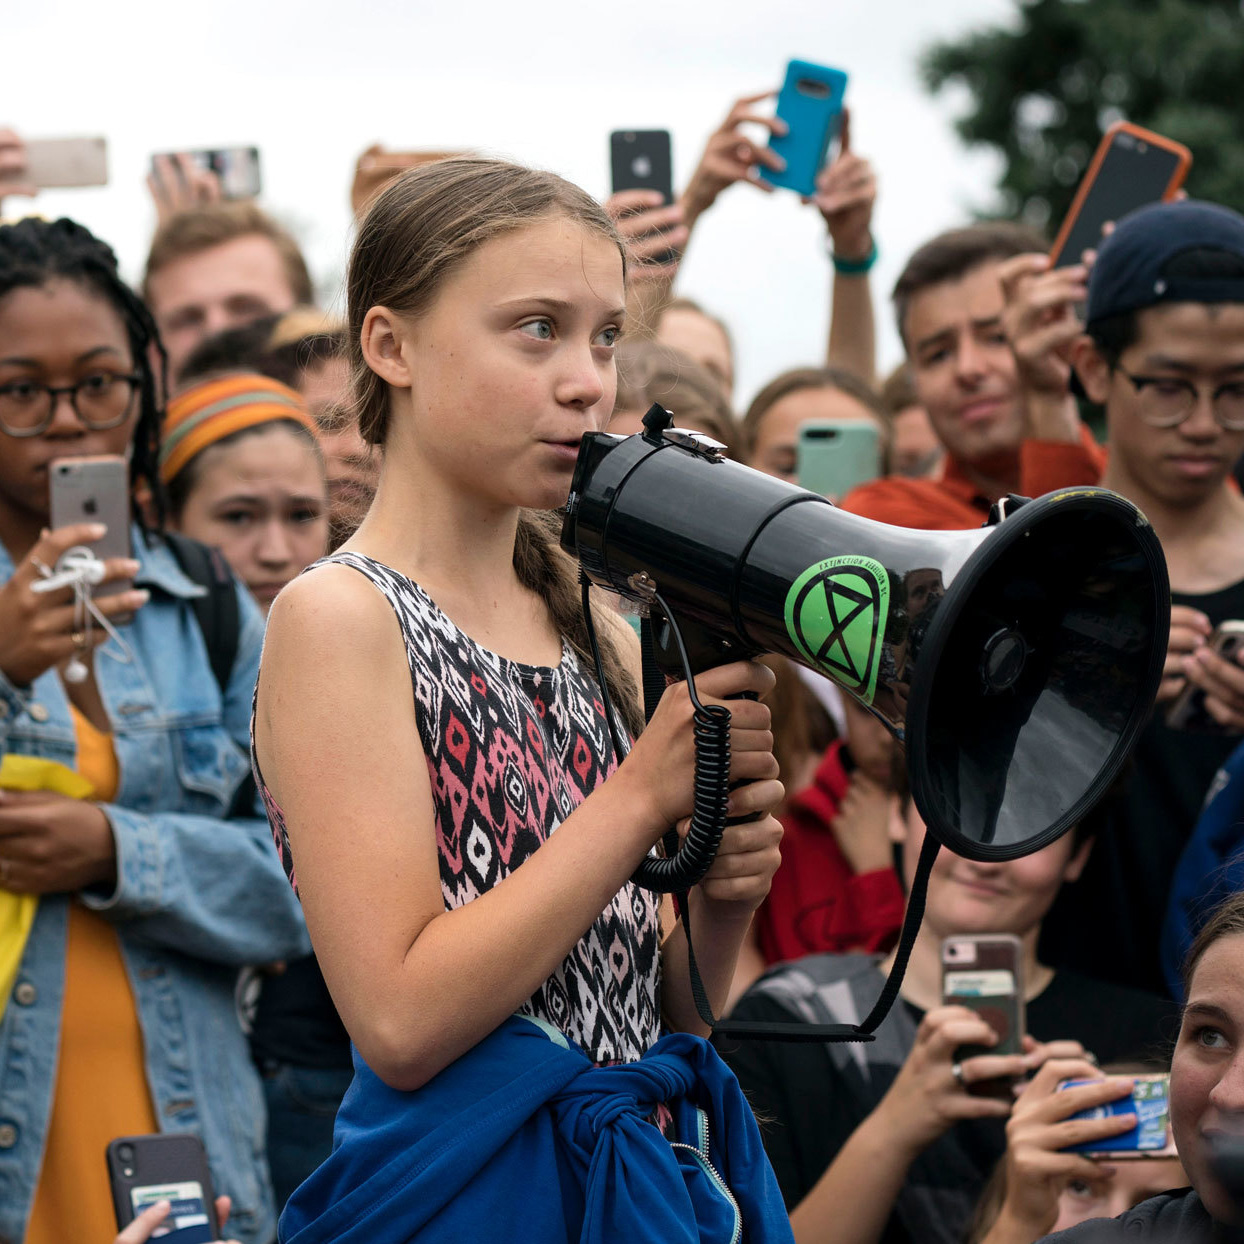 Greta Thunberg in a crowd with a megaphone